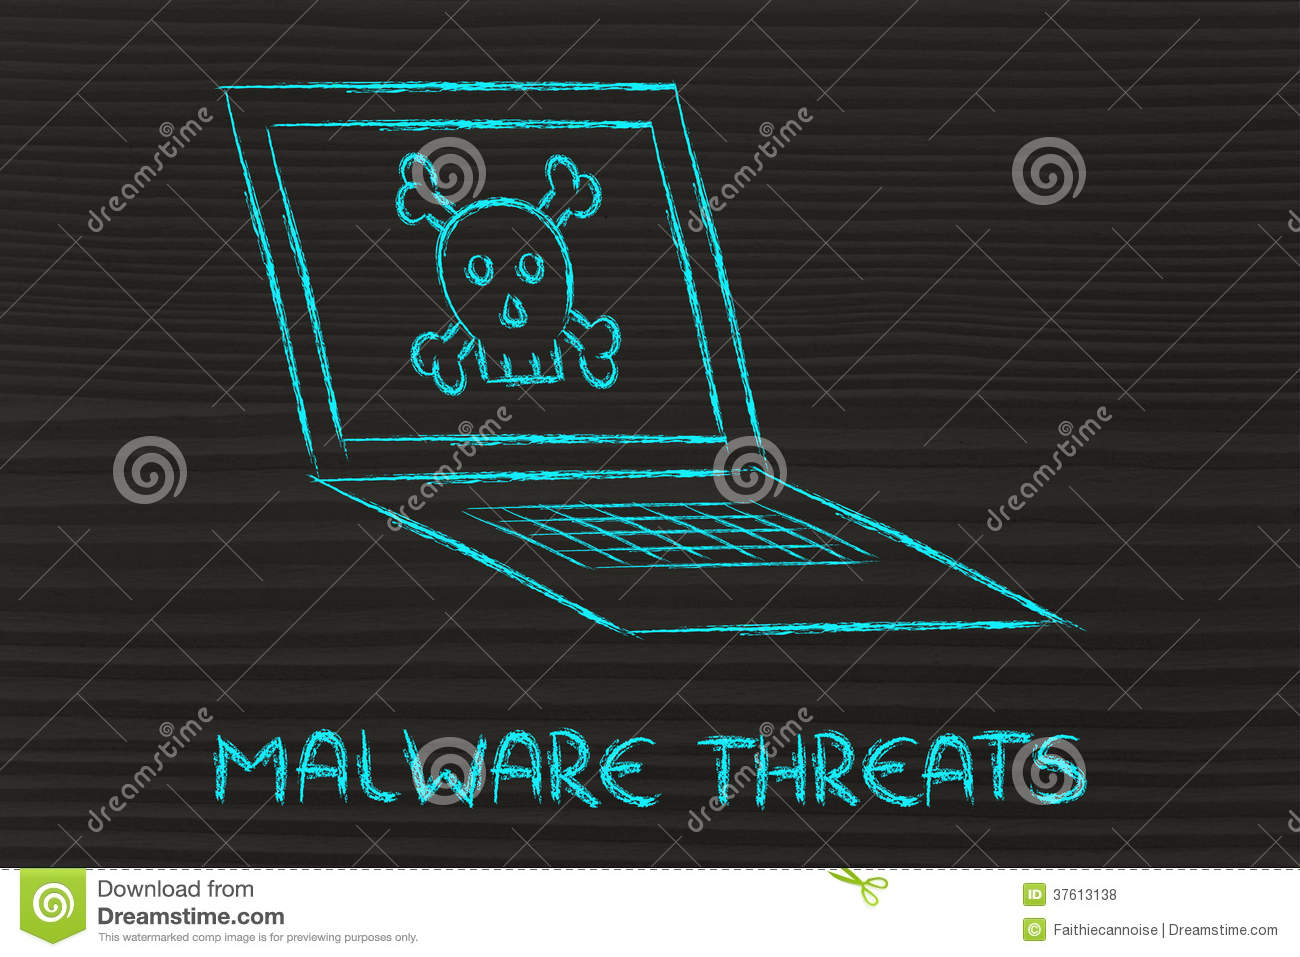 internet security threats Threatsecure network detects network security threats and advanced attack campaigns in progress and identifies changes in behavior to reveal malicious intent.